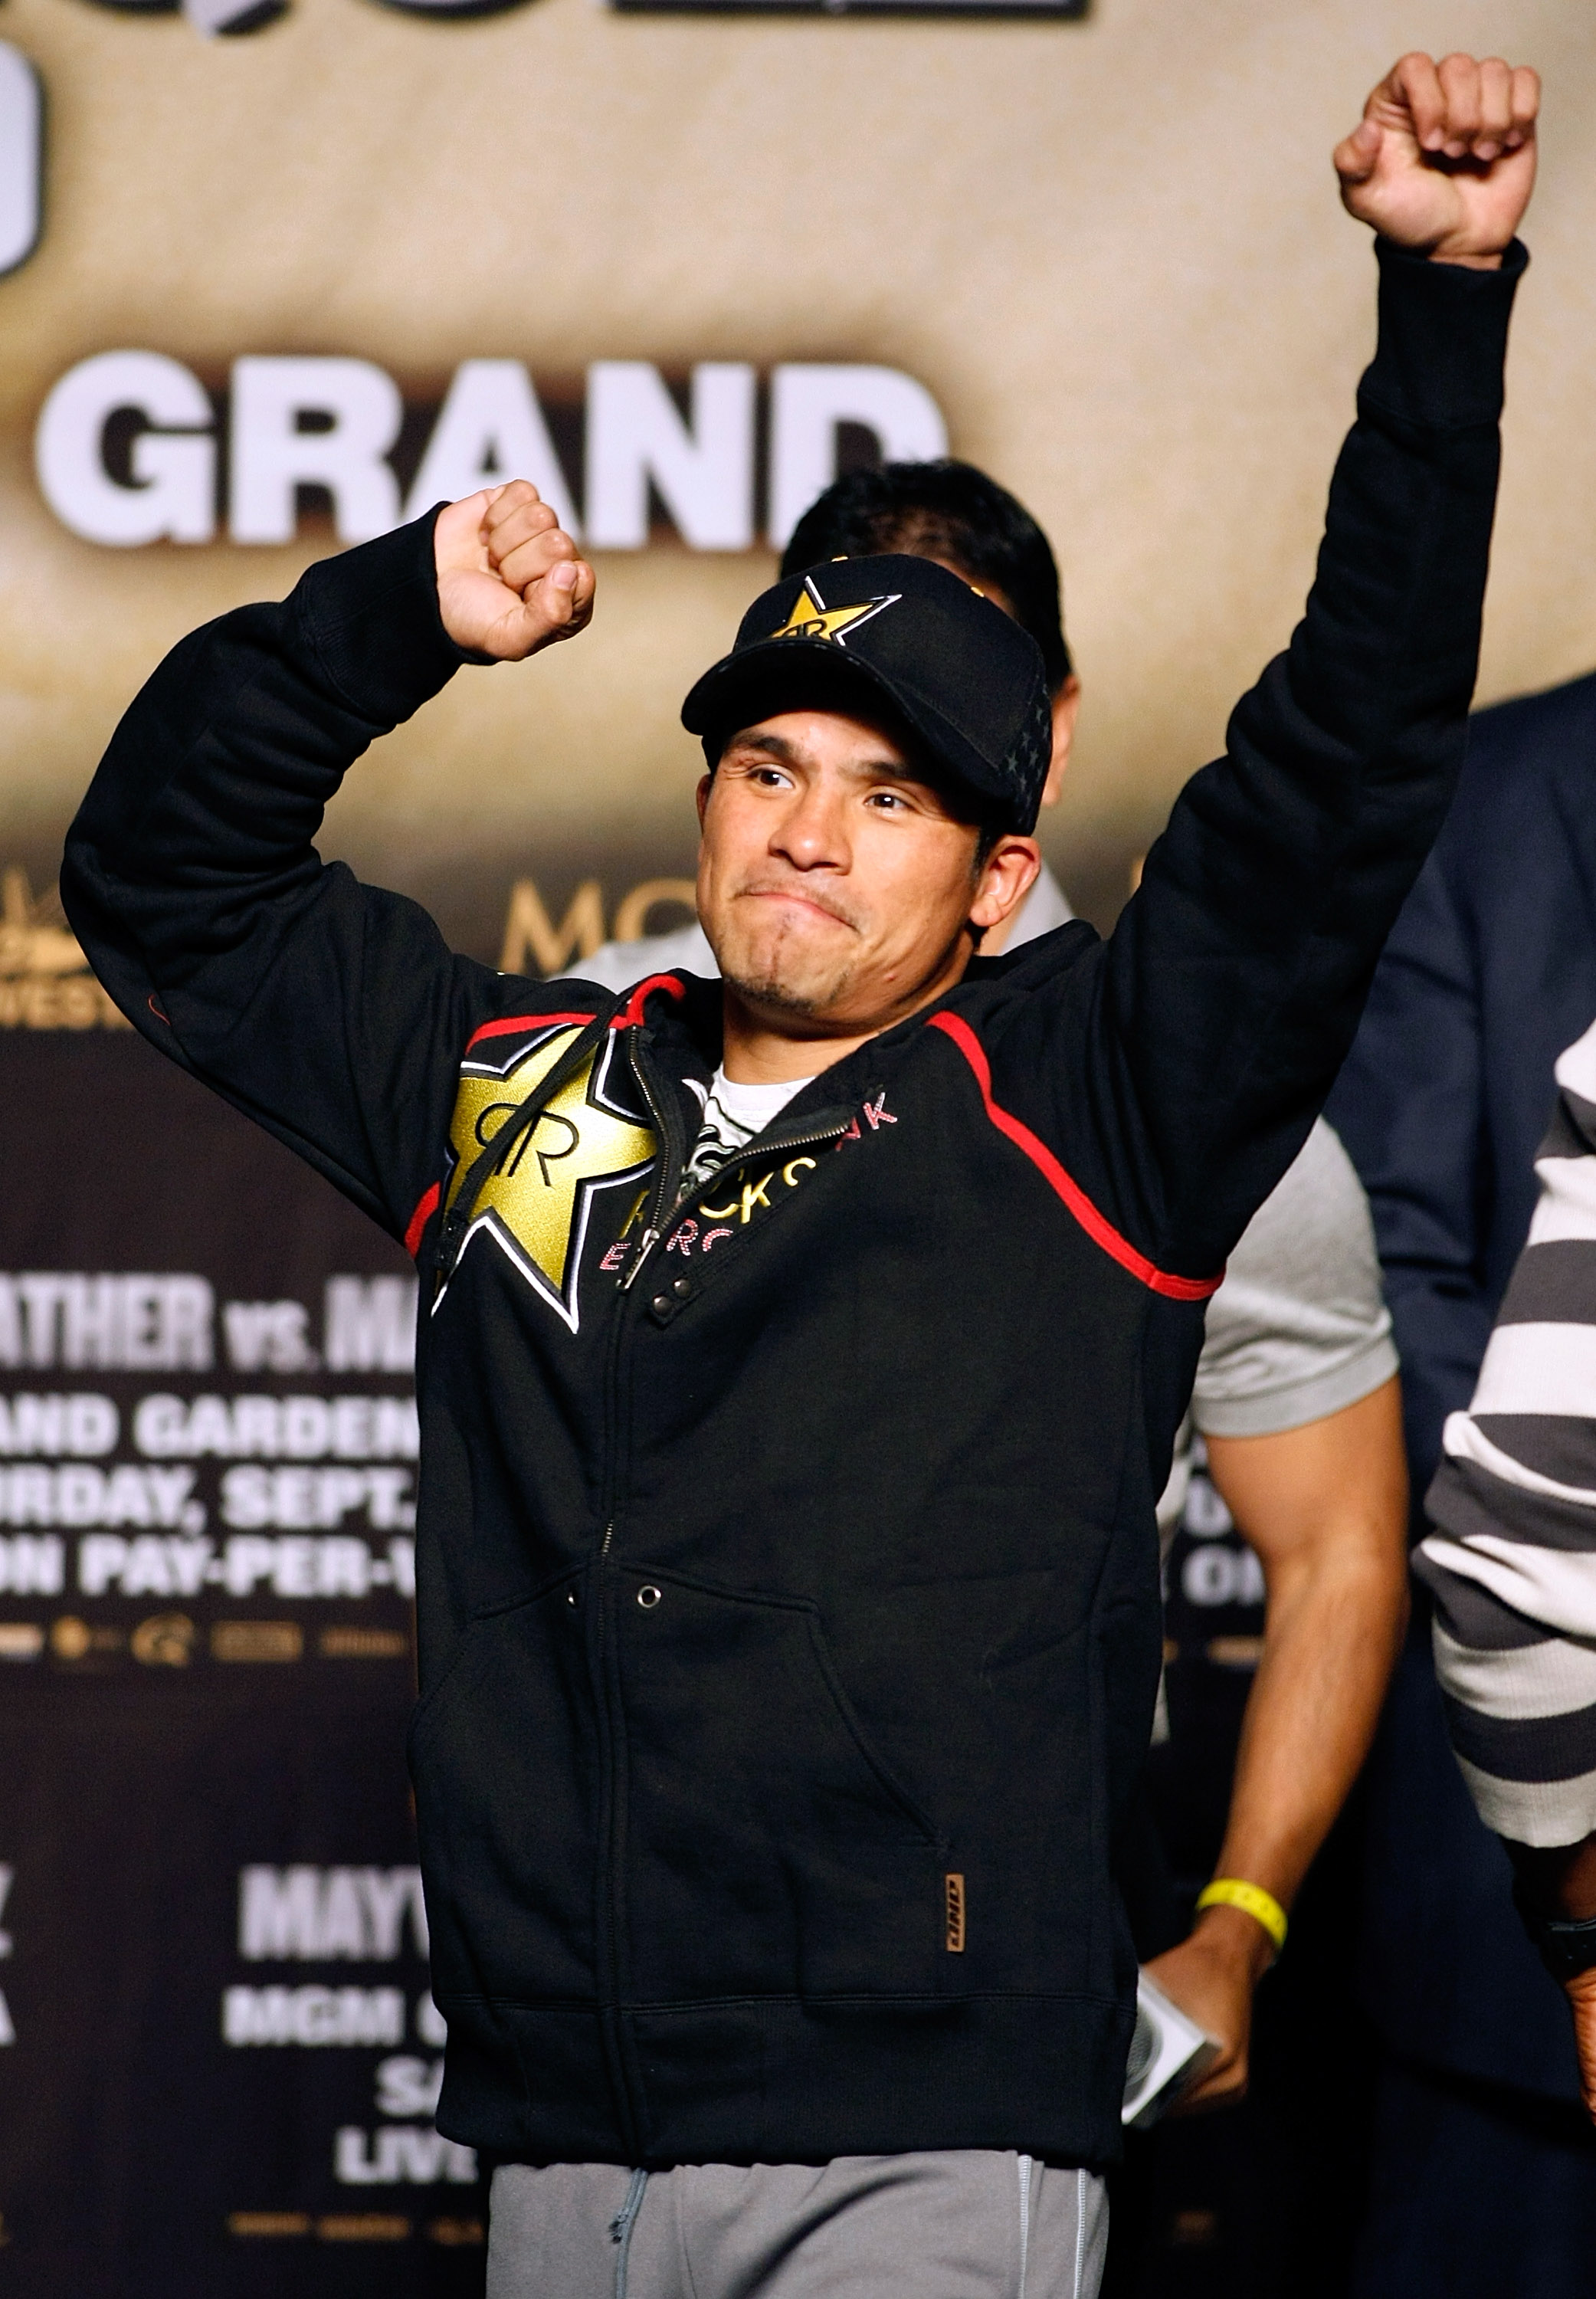 LAS VEGAS - SEPTEMBER 18:  Boxer Juan Manuel Marquez gestures during his official weigh-in for his fight with Floyd Mayweather Jr. at the MGM Grand Garden Arena September 18, 2009 in Las Vegas, Nevada. The two will fight at the MGM on September 19.  (Phot